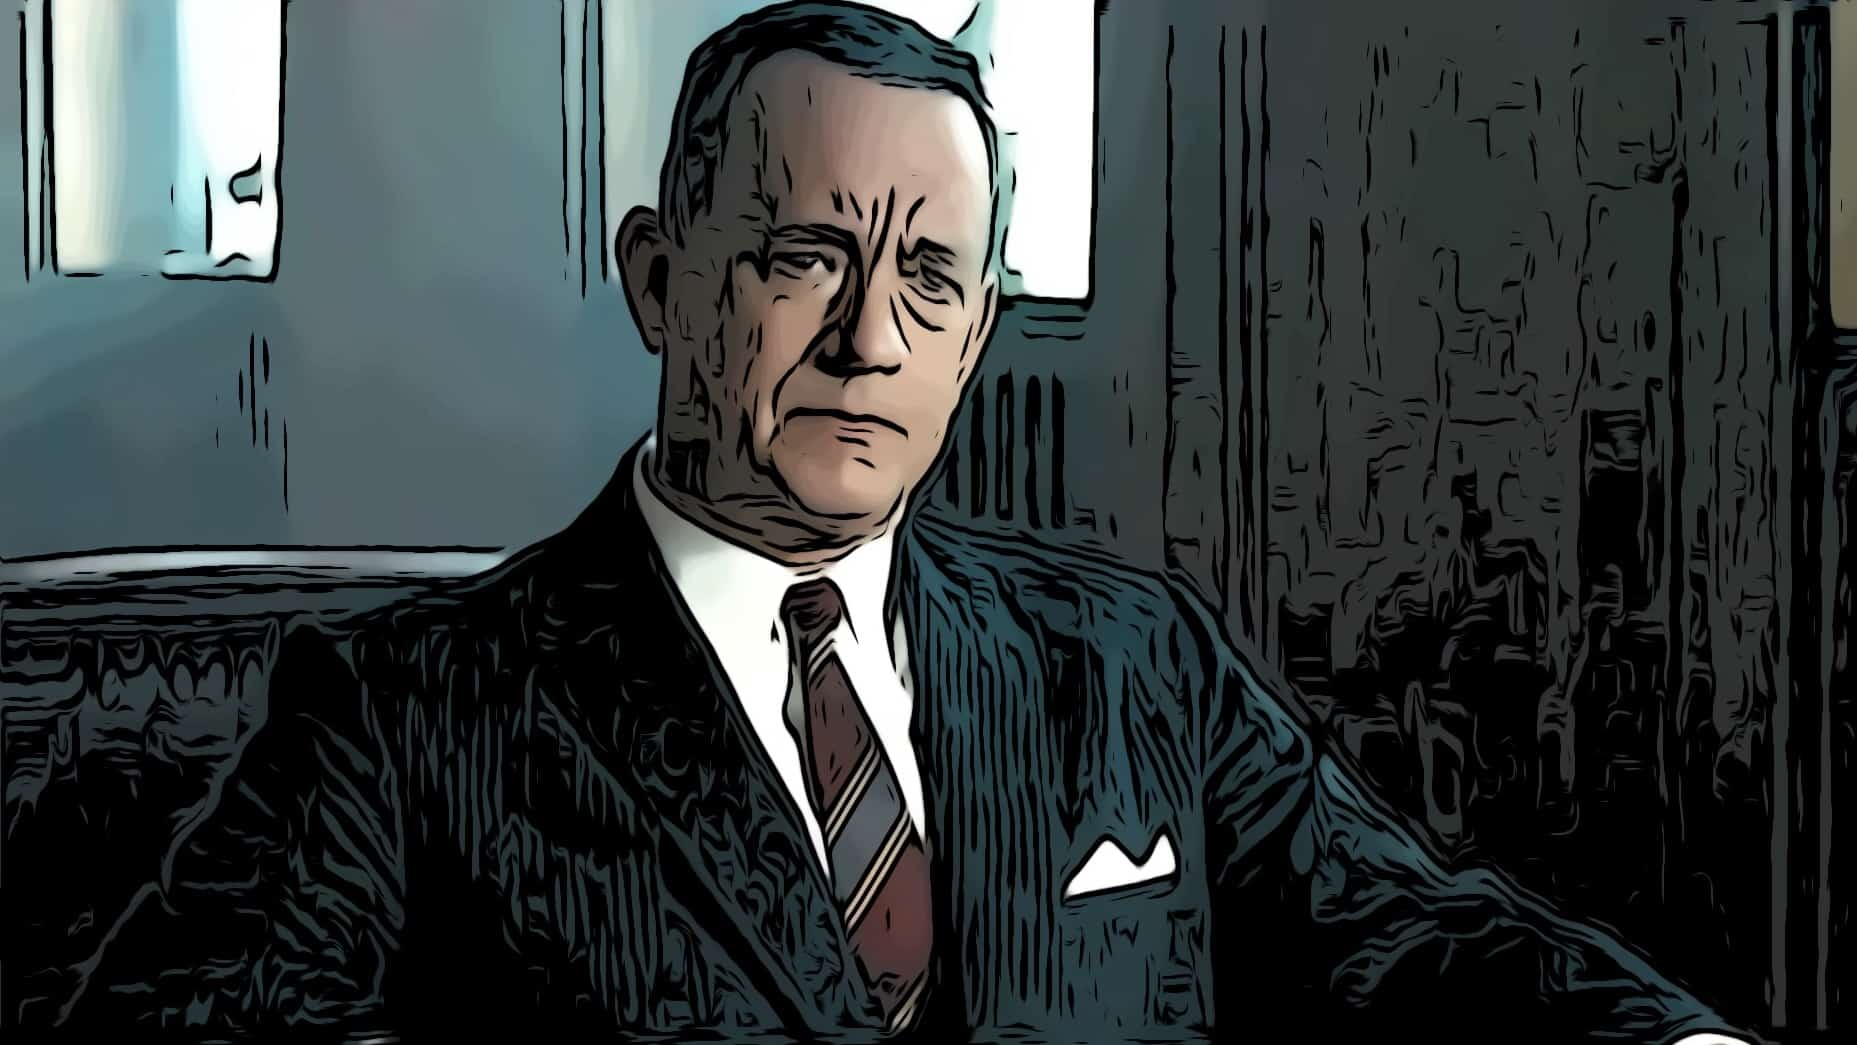 Scene from Bridge Of Spies for Tom Hanks movies post.